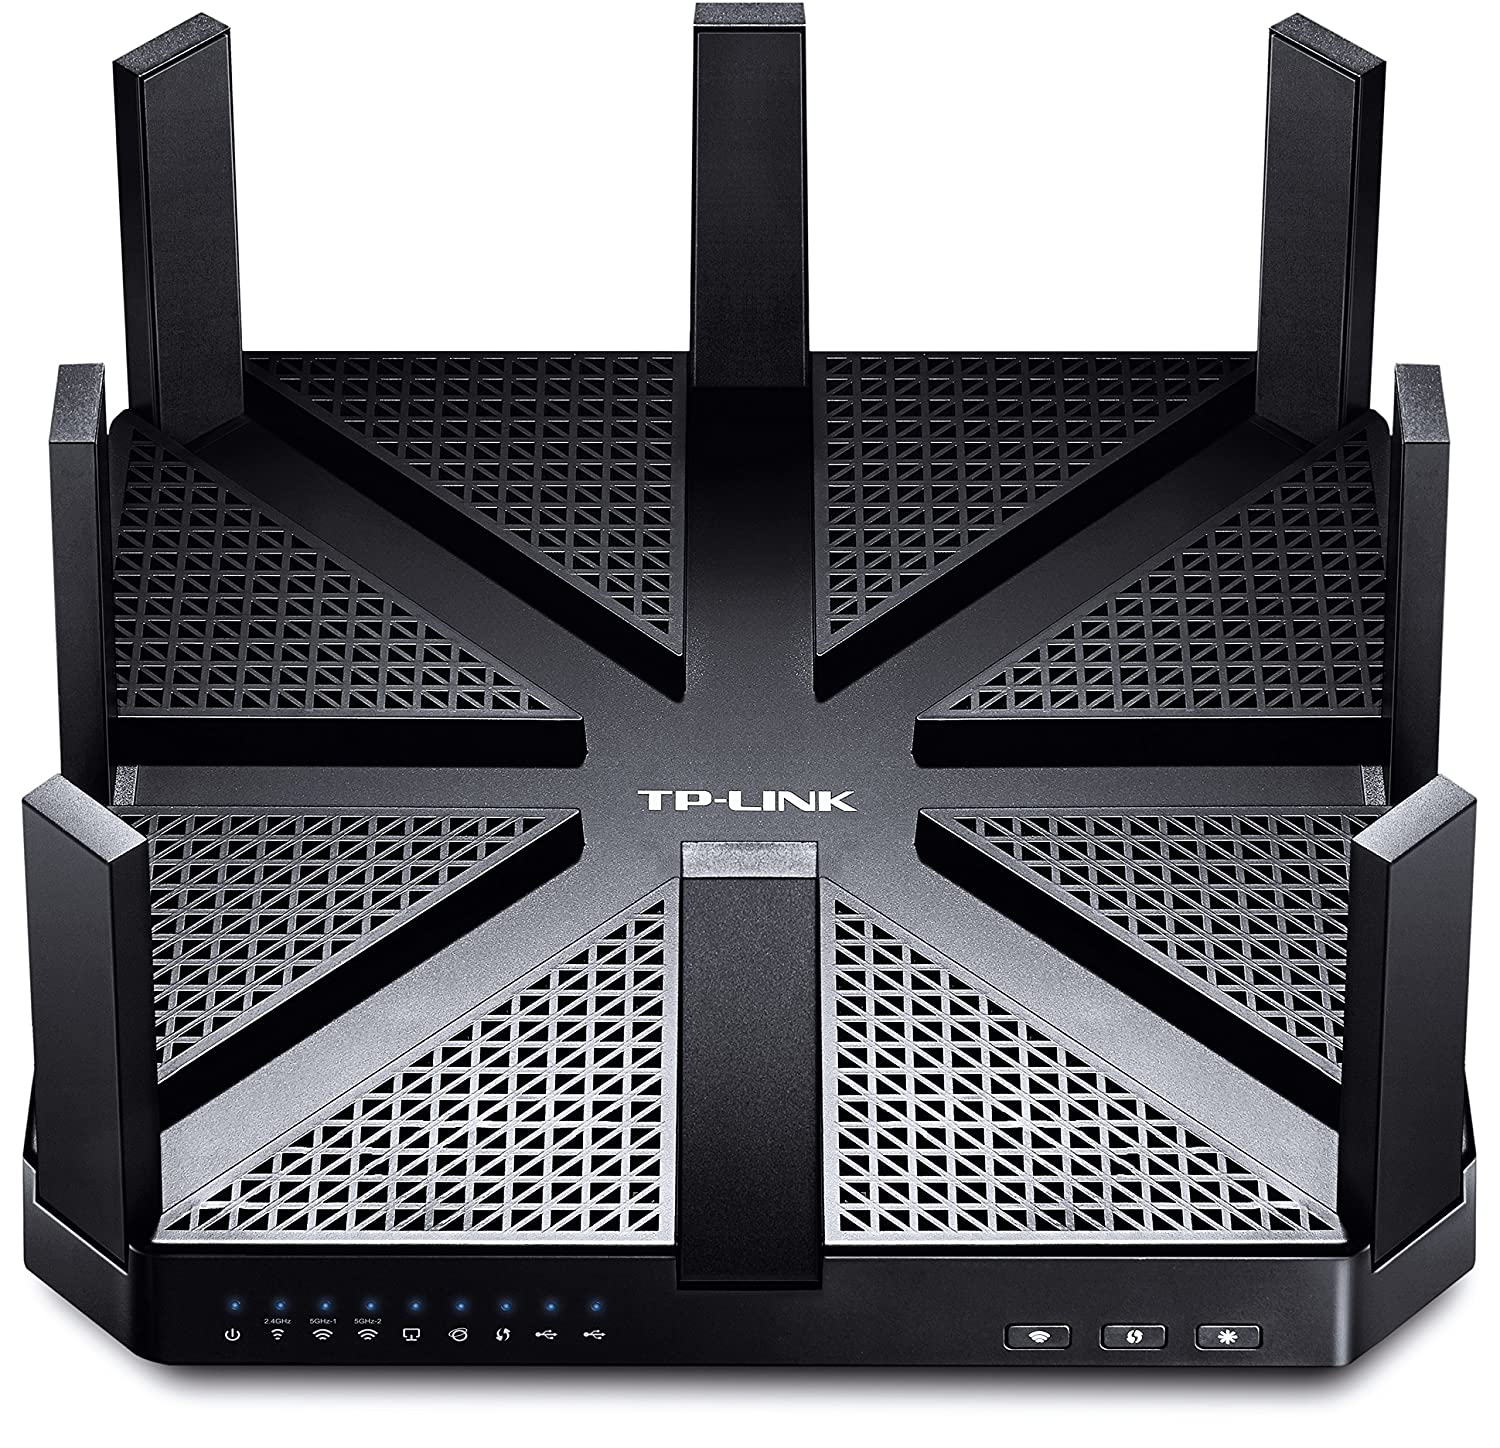 Best Overall and Speed: TP-Link's AD7200 Wireless Router